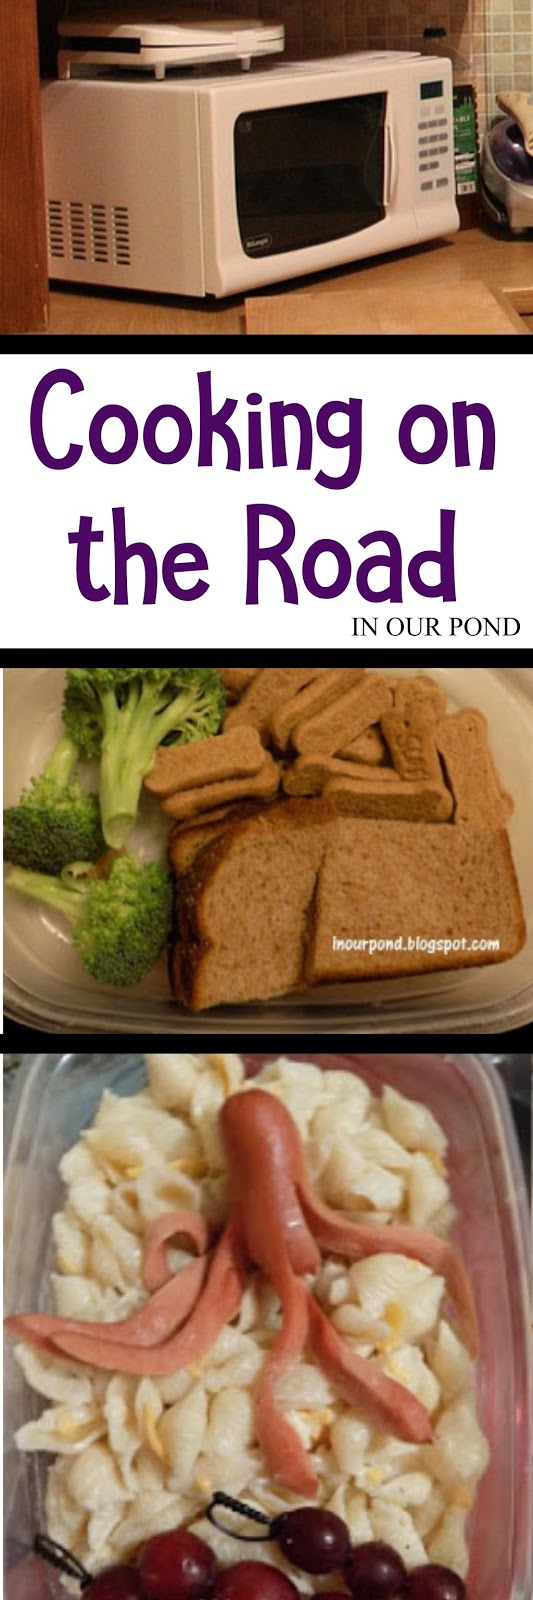 Pirate Road Trip Series: Cooking on the Road from In Our Pond #travel #hotel #roadtrip #travelwithkids #hotelcooking #roadtripfood #hotelwithkids #roadtripwithkids #food #lunch #bento #piratefood #pirateparty